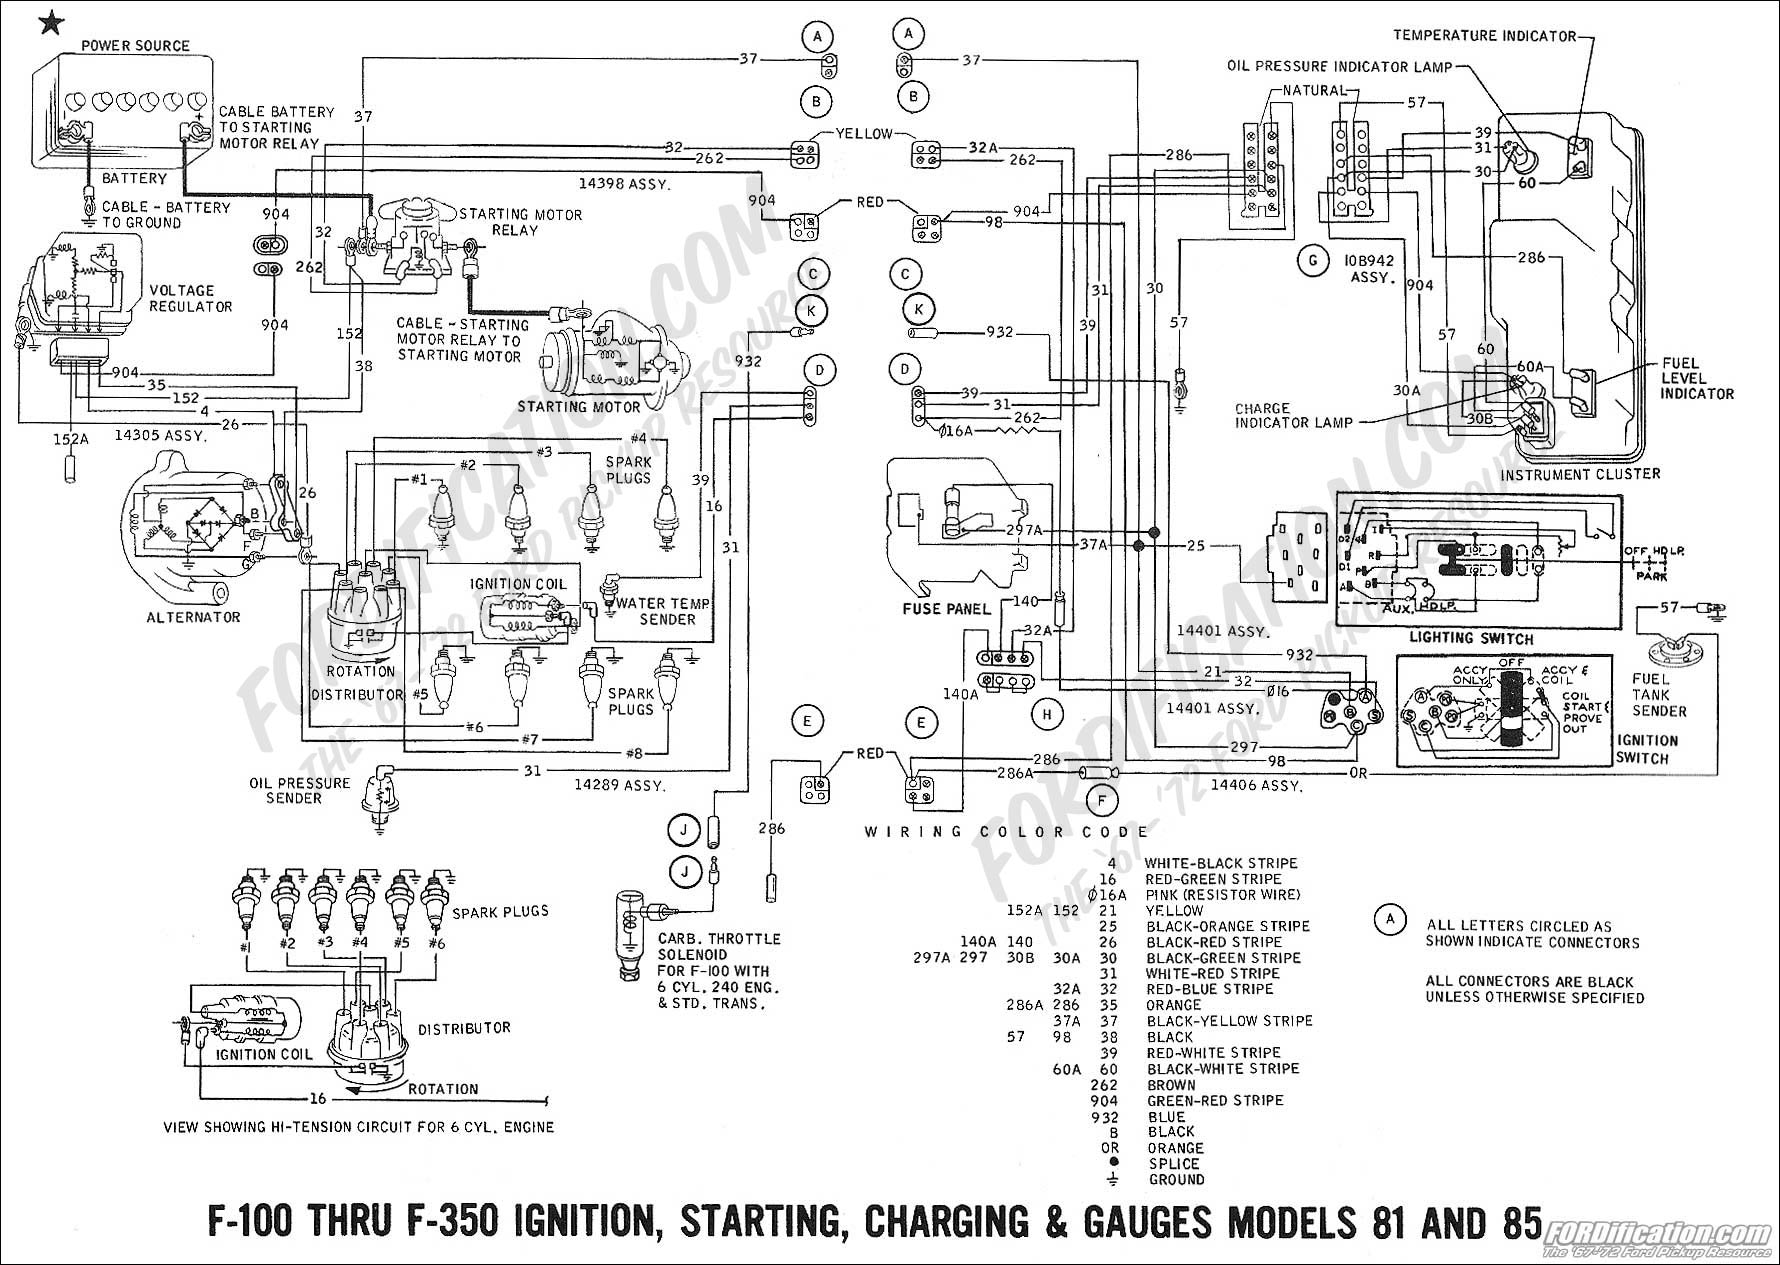 Ford F350 Wiring Schematic Online Circuit Diagram Dodge Ram 2004 Apps Truck Technical Drawings And Schematics Section H Rh Fordification Com 1997